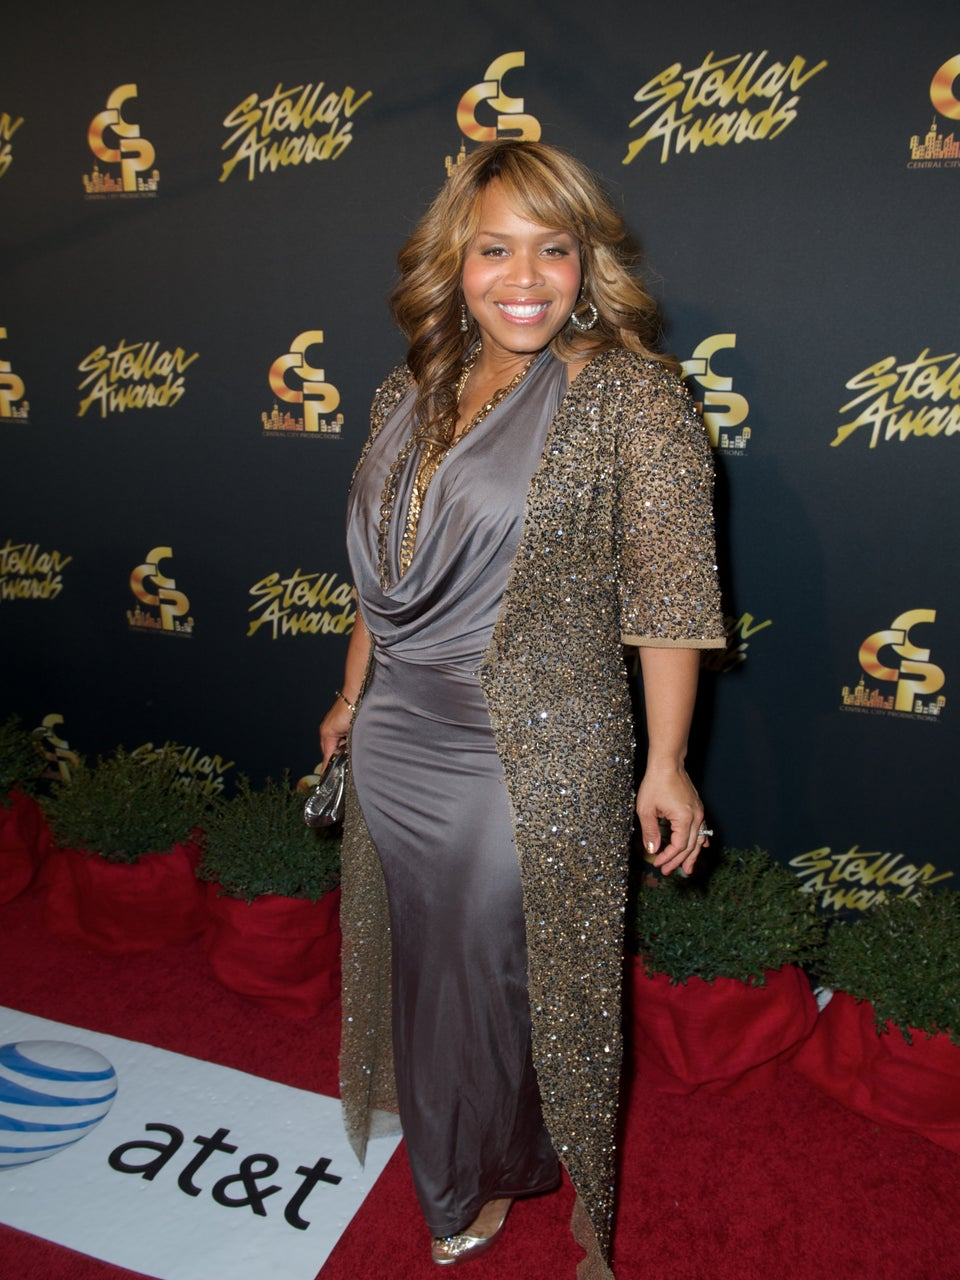 Exclusive: Tina Campbell is Expecting Her Fifth Child